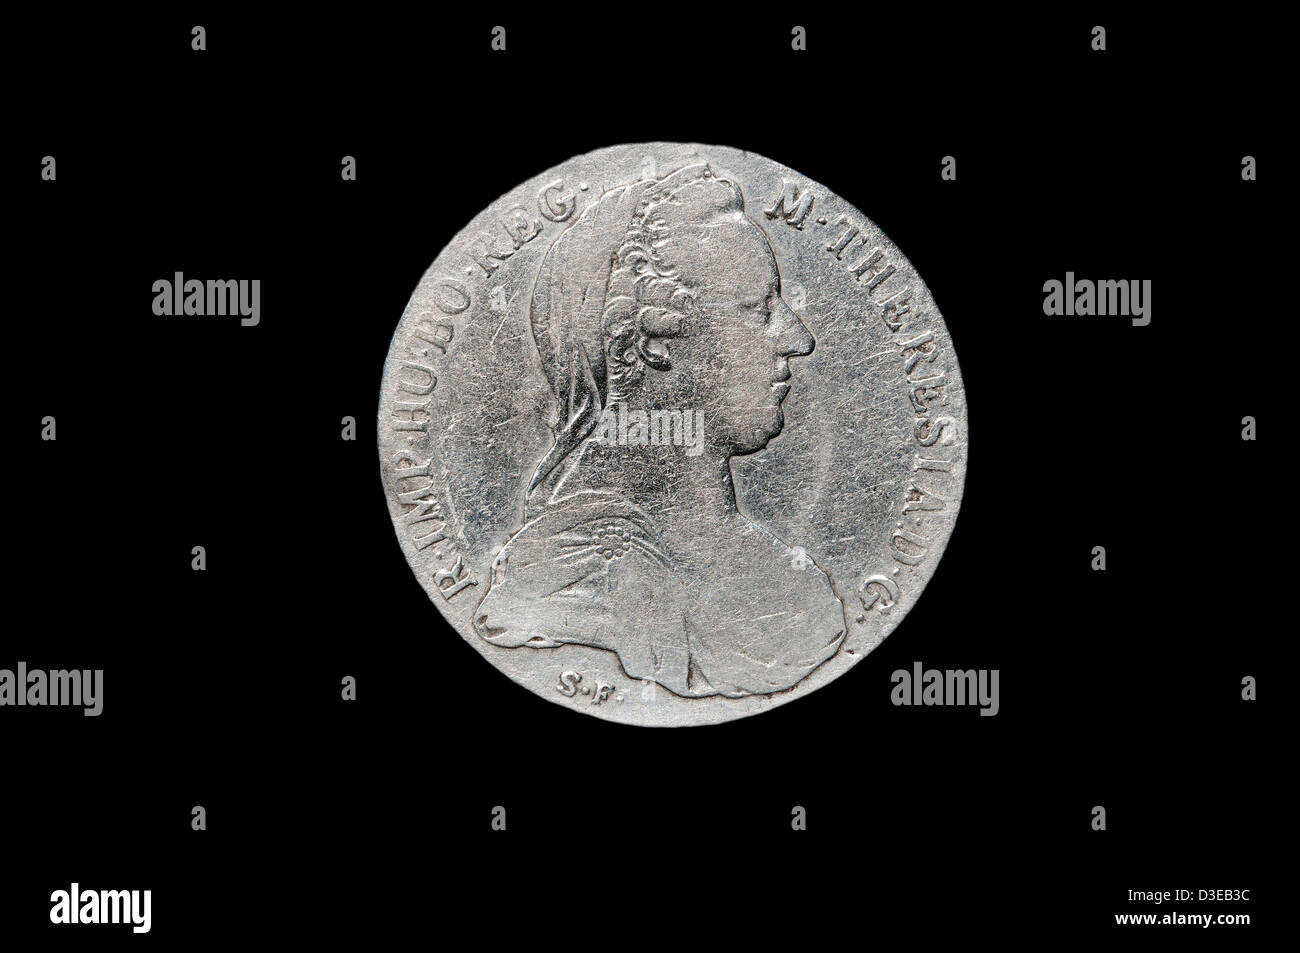 Maria Theresa Thaler, obverse side, year of minting 1780, location Ethiopia - Stock Image